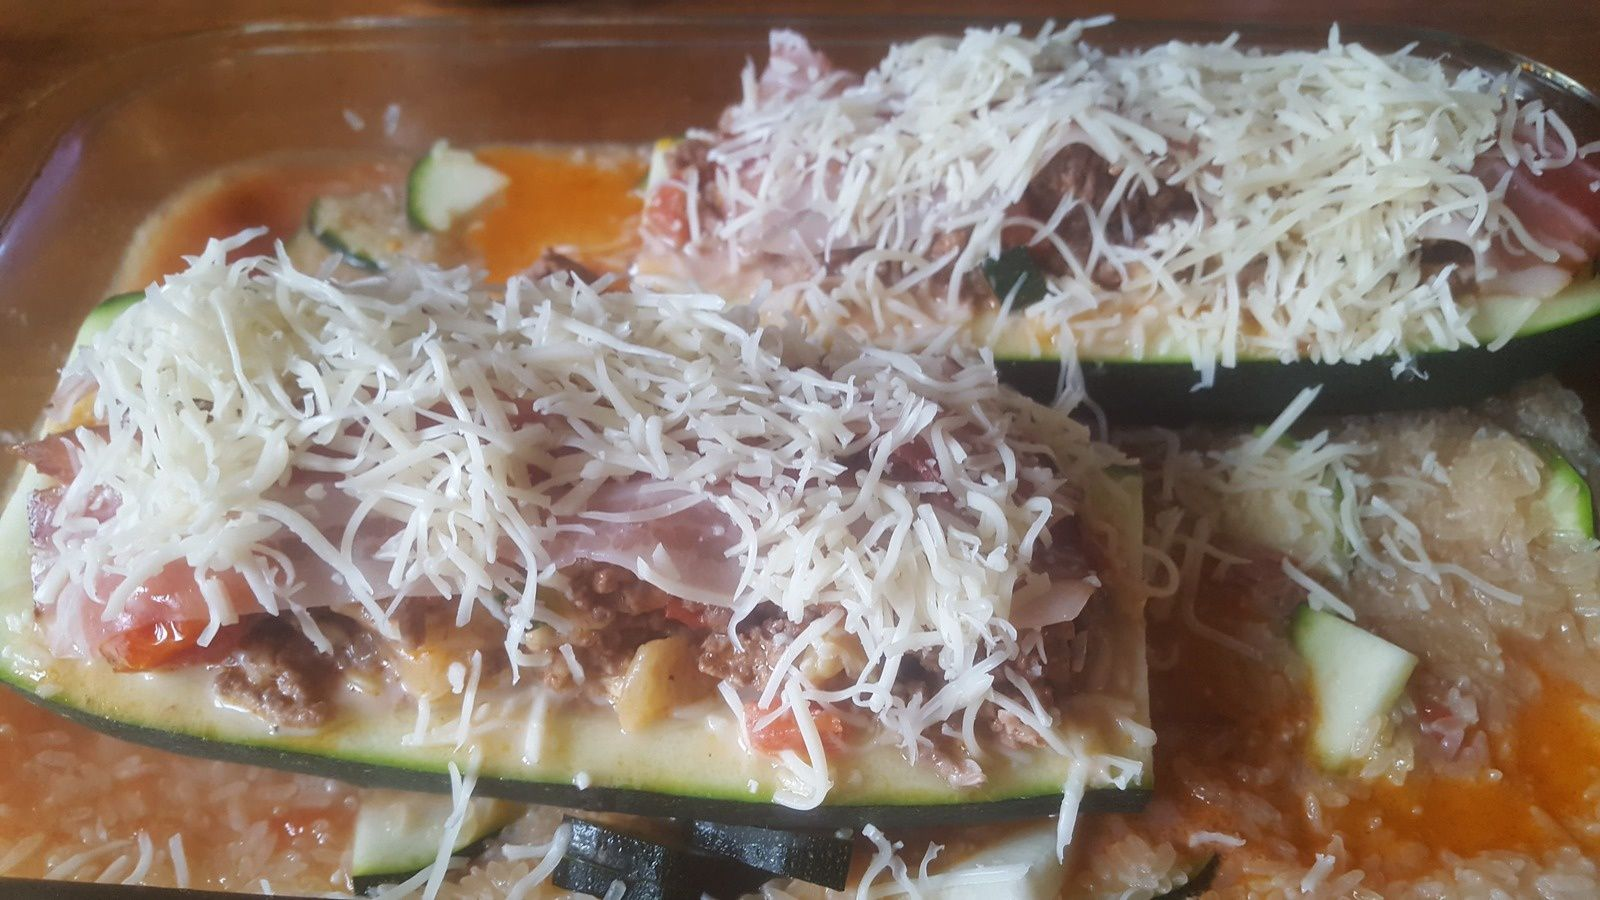 Courgettes farcies.